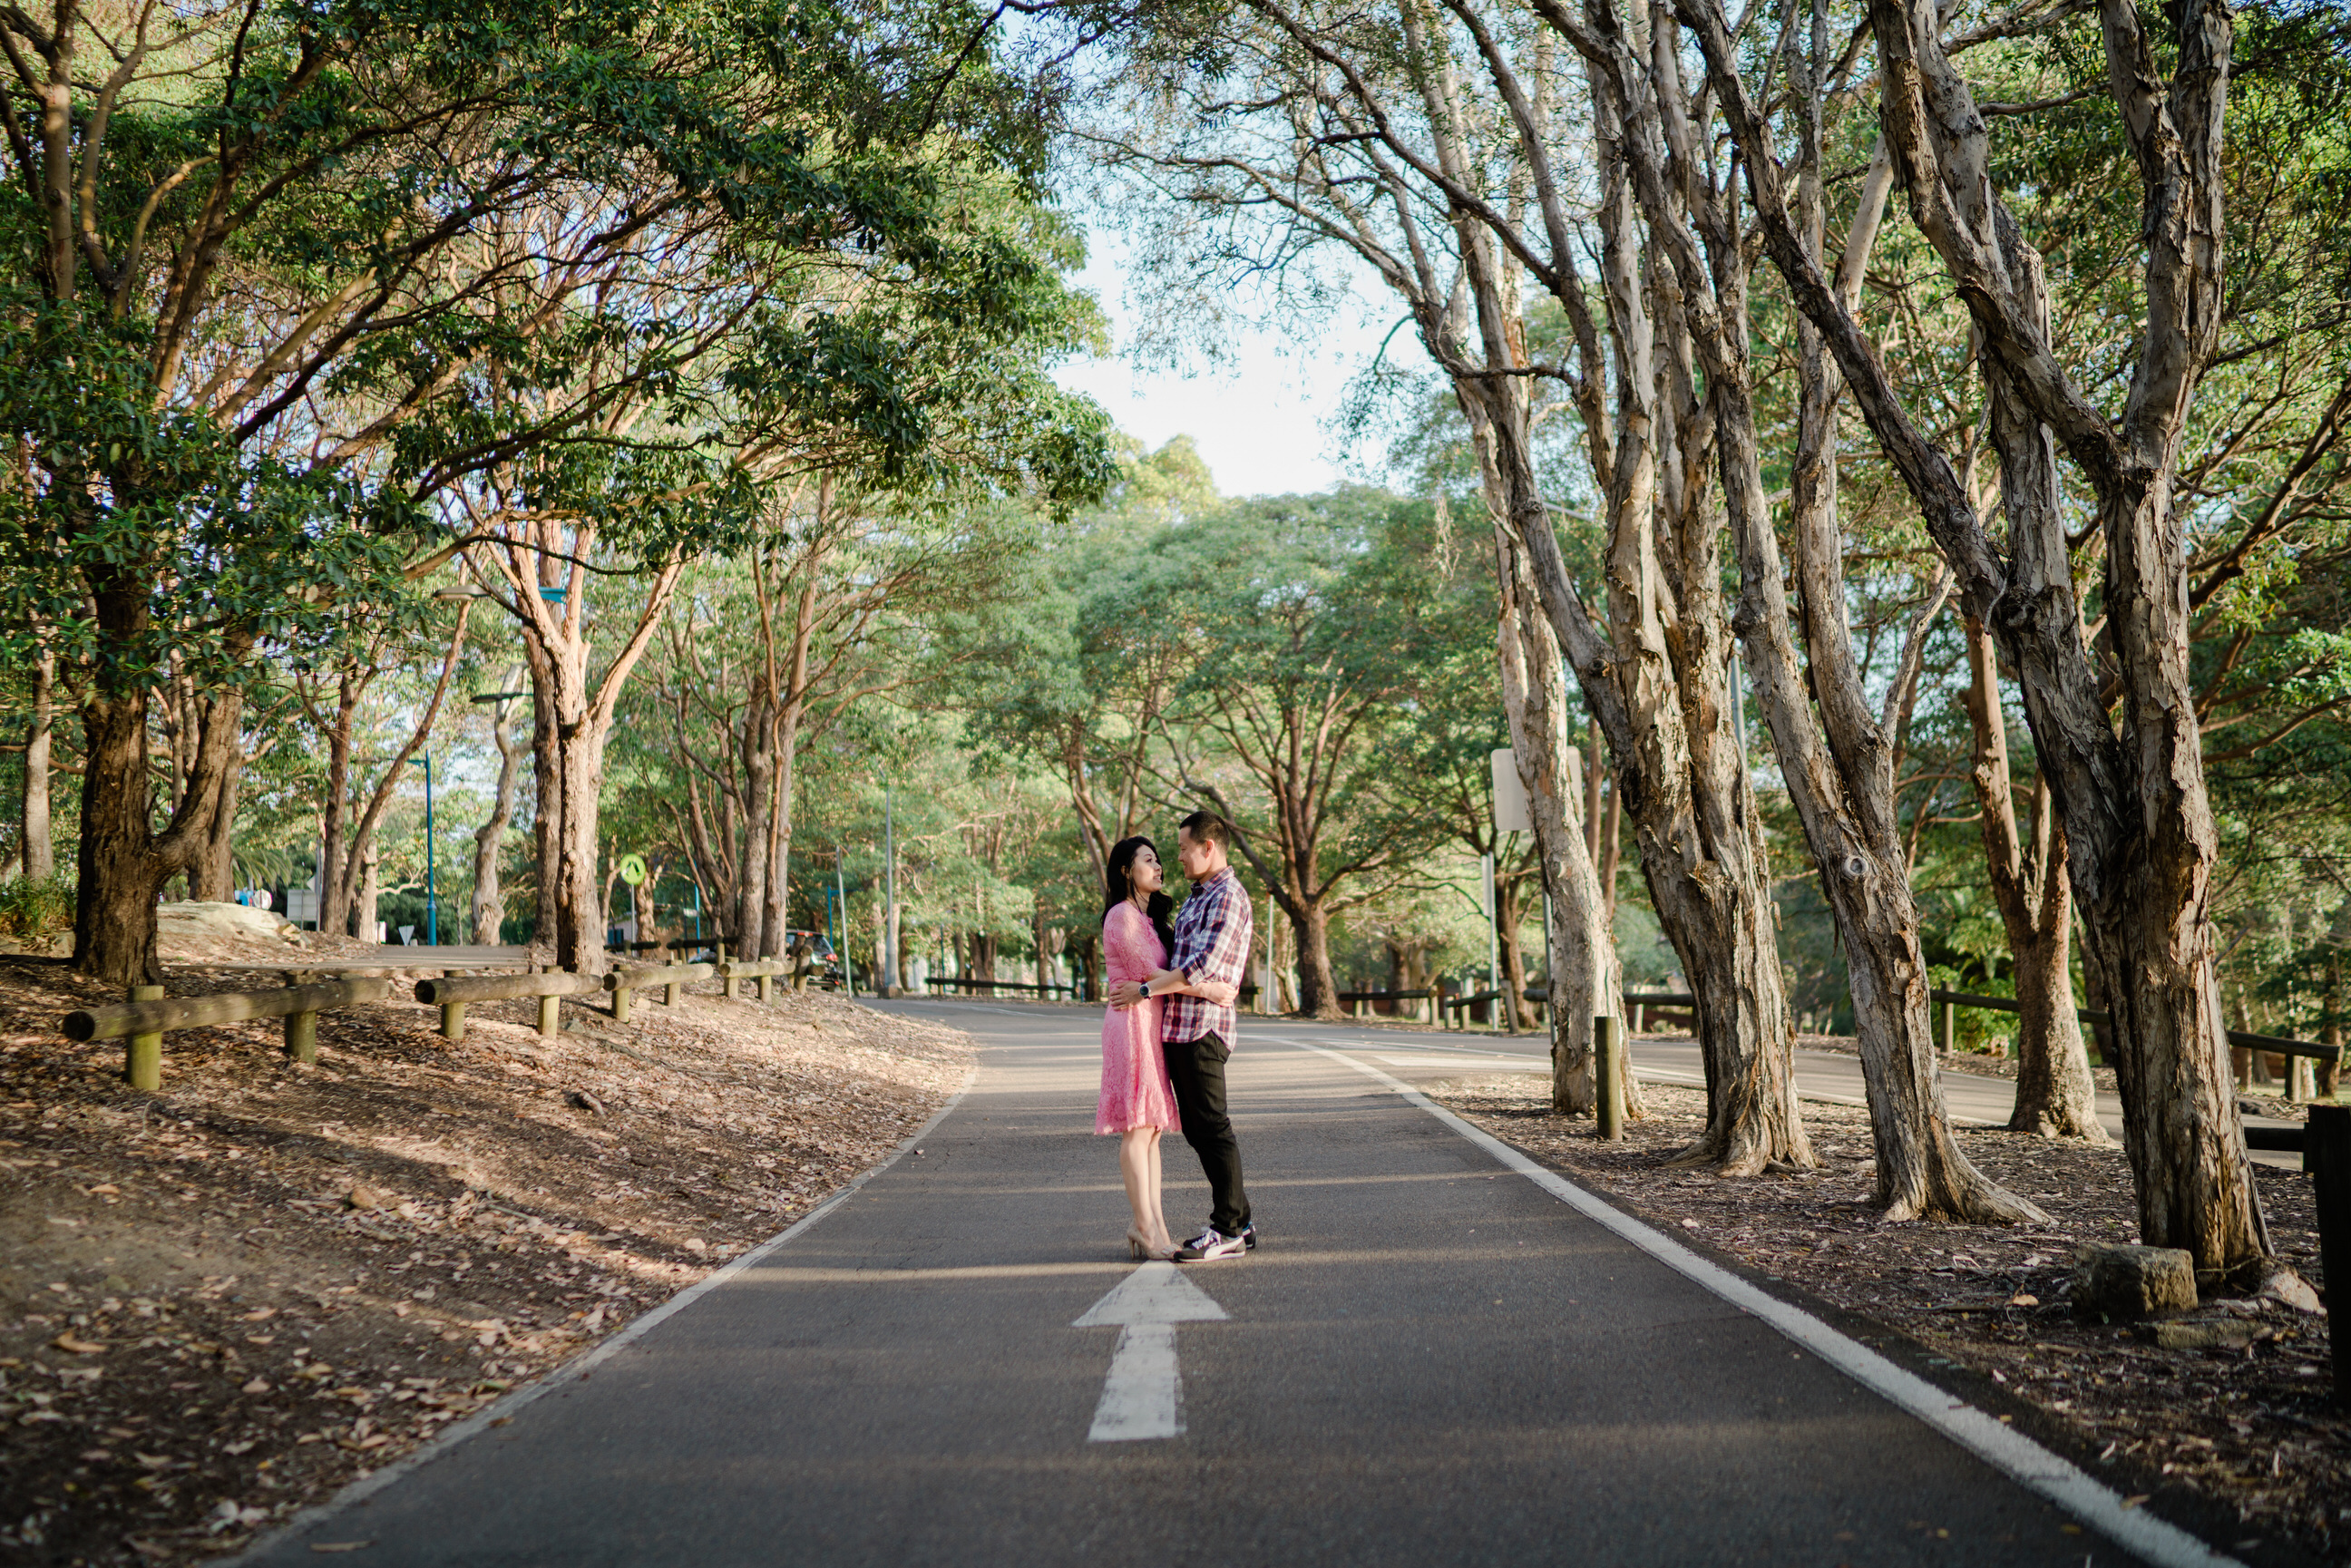 Stacy & Danny's Pre-Wedding Photos at Cabarita Park - Photos by Fuzzy Pear Studio Sydney Wedding Photographers